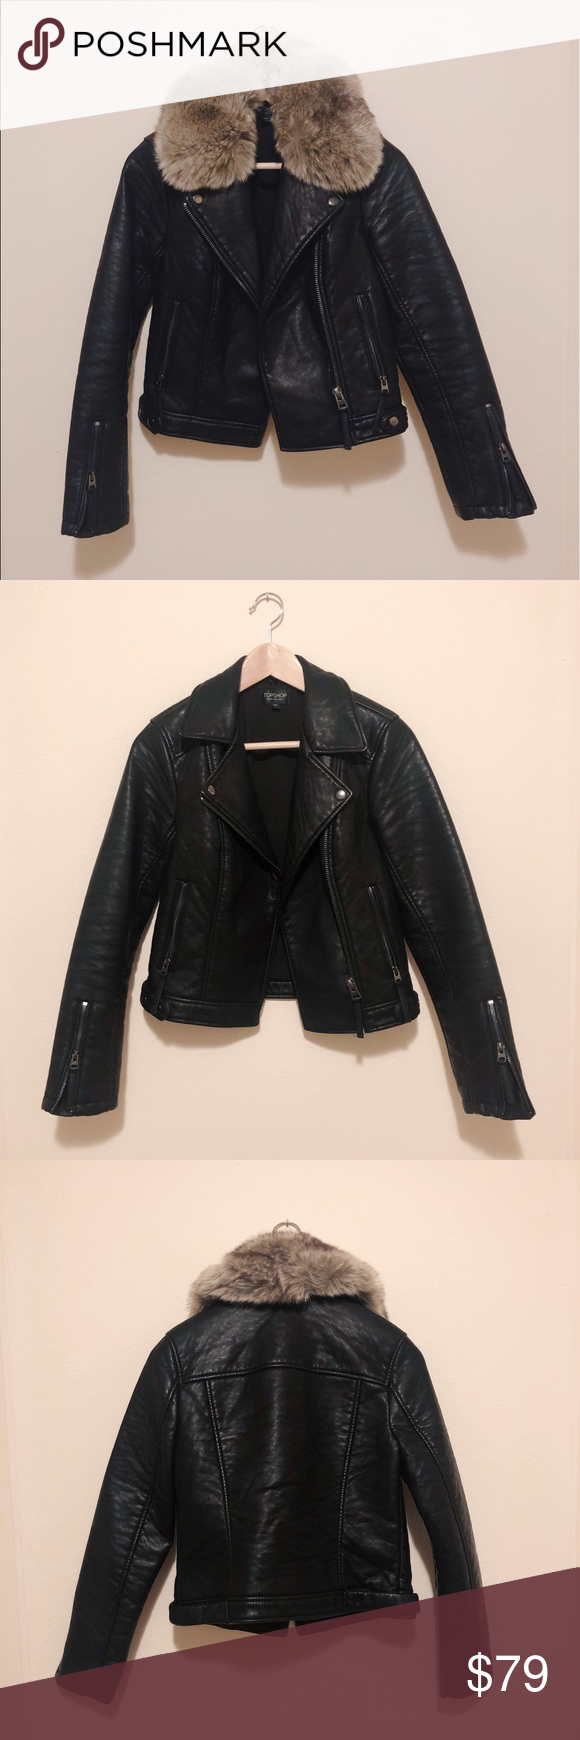 Leather Jacket with Removable Fur Collar Leather